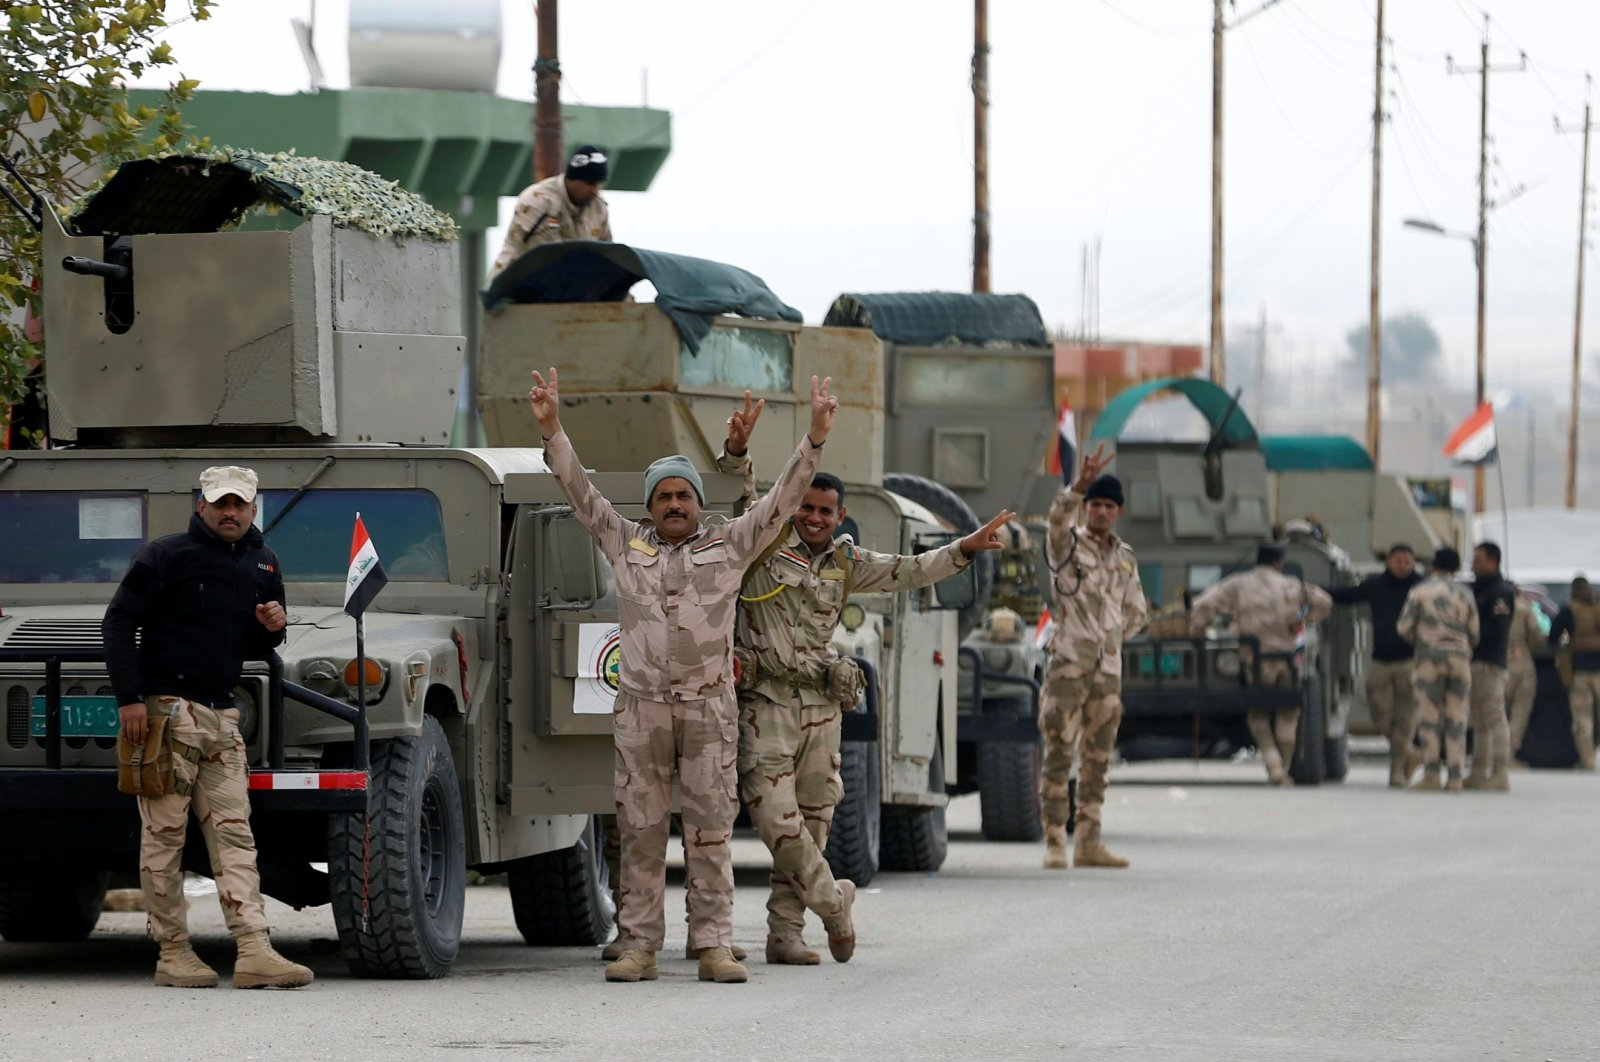 Members of Iraqi security forces flash a victory sign during deployments in Sinjar, Iraq, Dec. 1, 2020. REUTERS